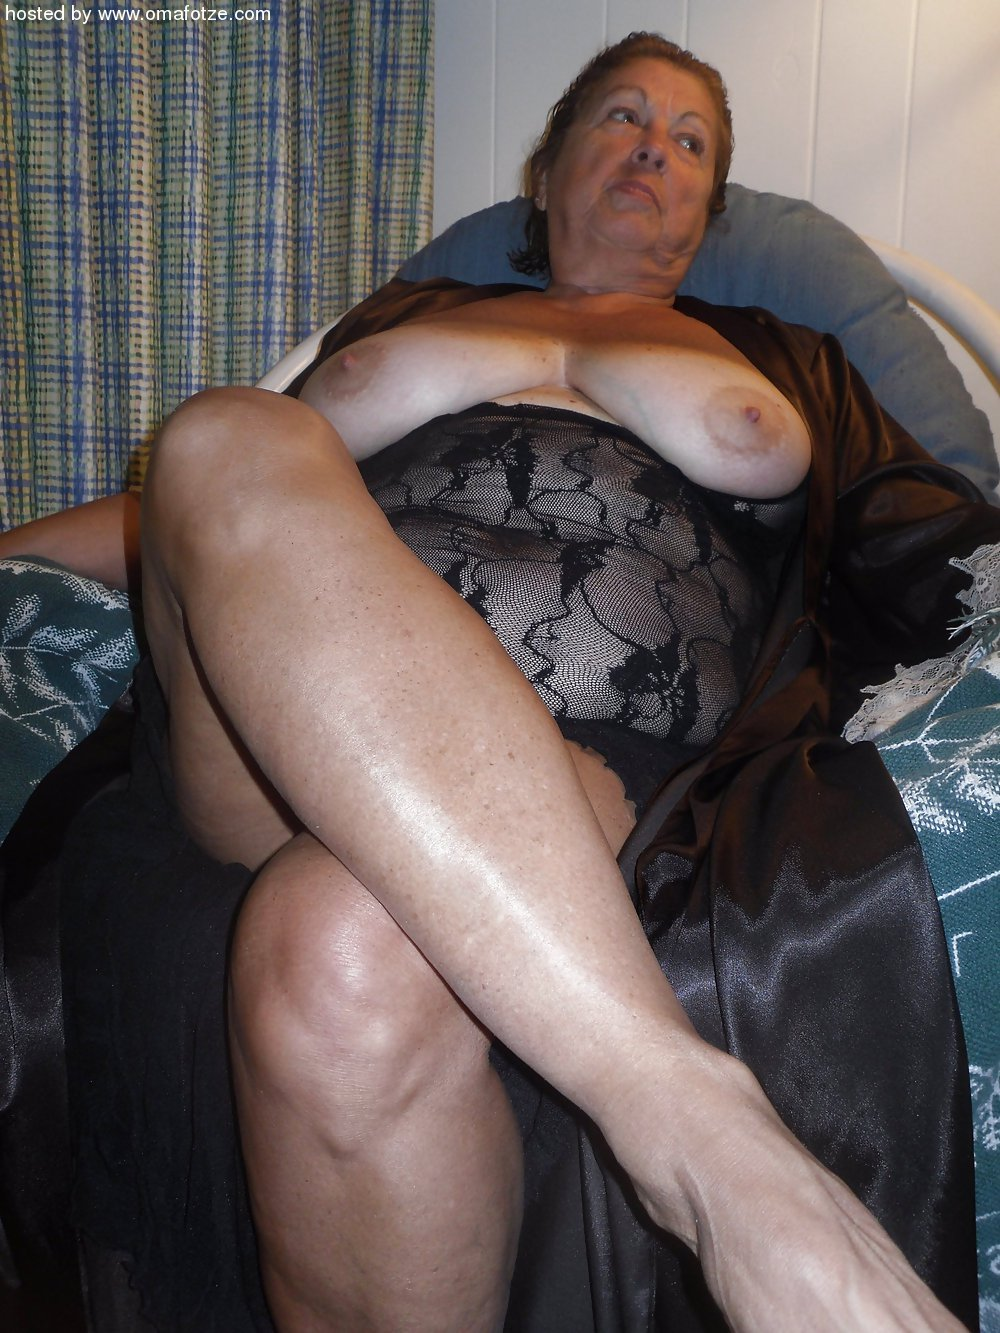 Hot Granny Porn Pictures And Vids - Free Granny And Mature -3624